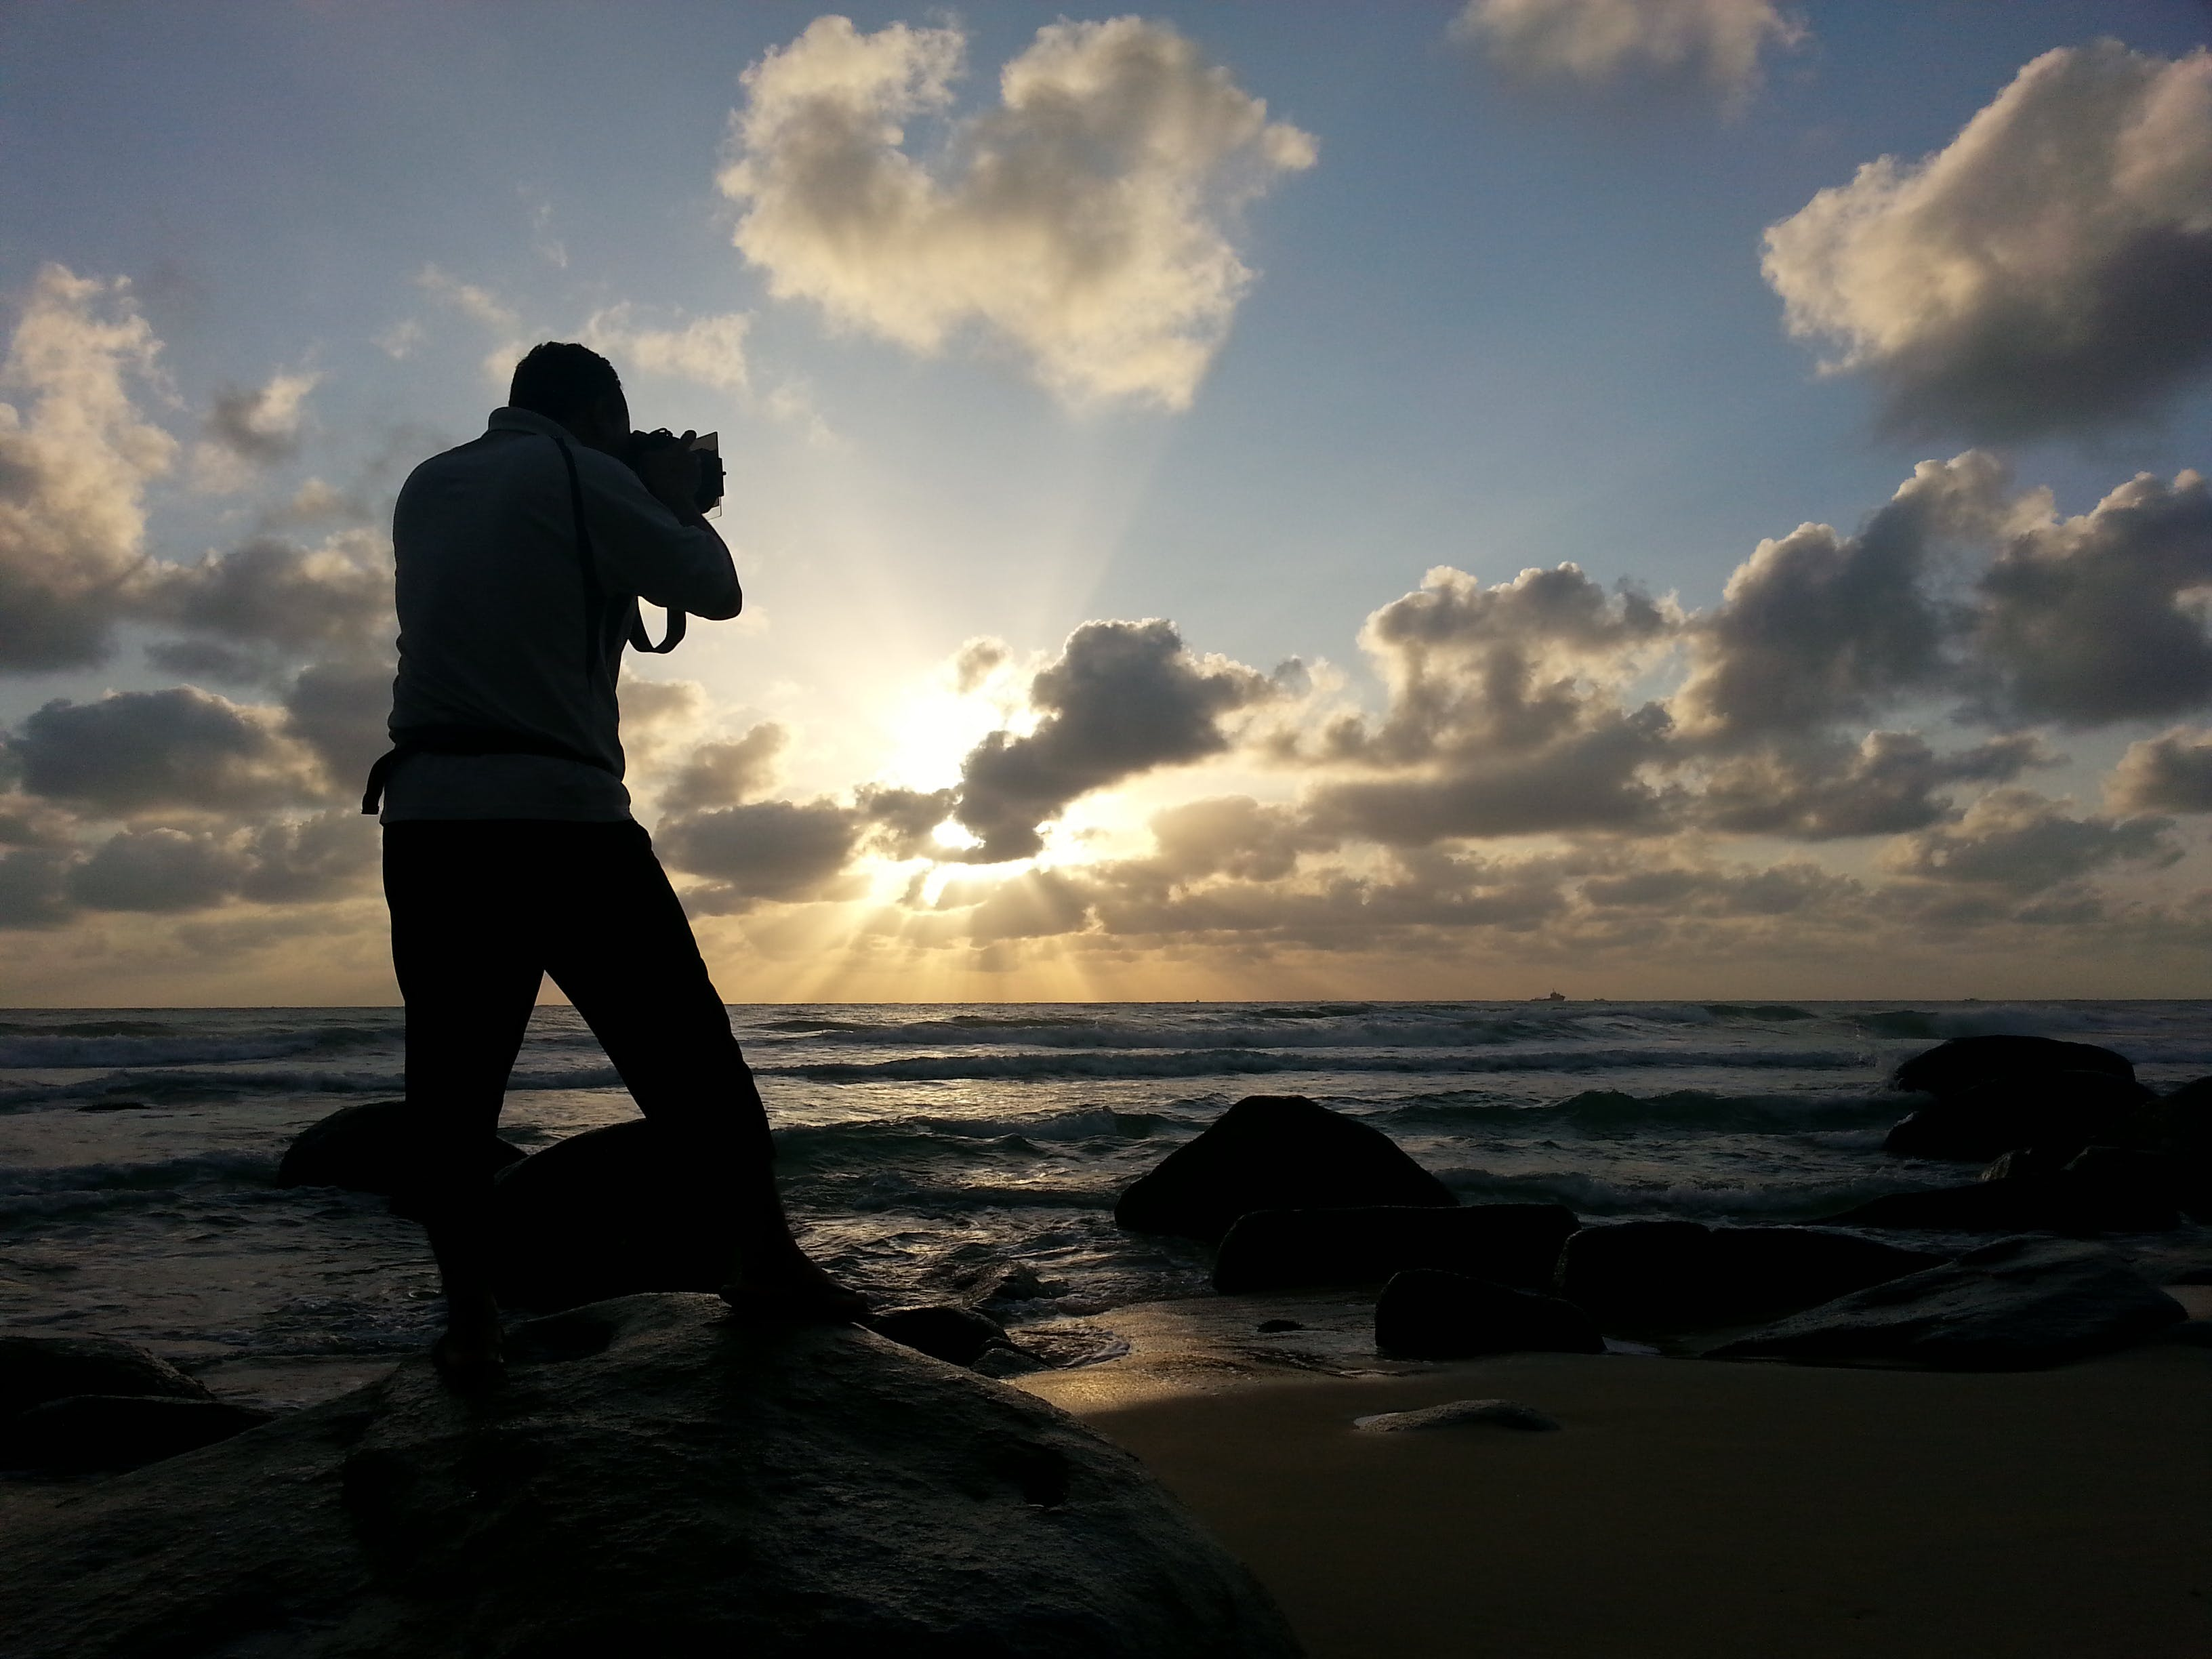 Person Capturing Photo Near Sea Under Clear Blue and White Cloudy Sky during Daytime